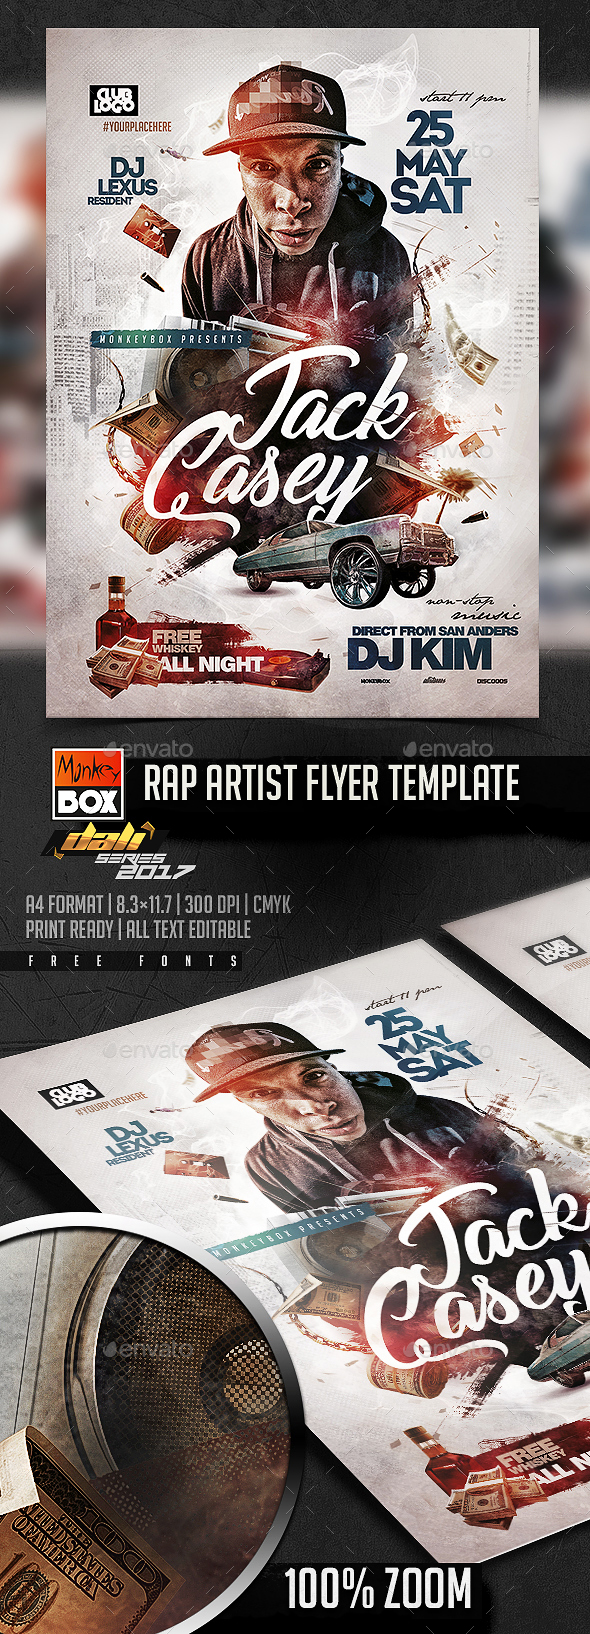 Rap Artist Flyer Template - Events Flyers